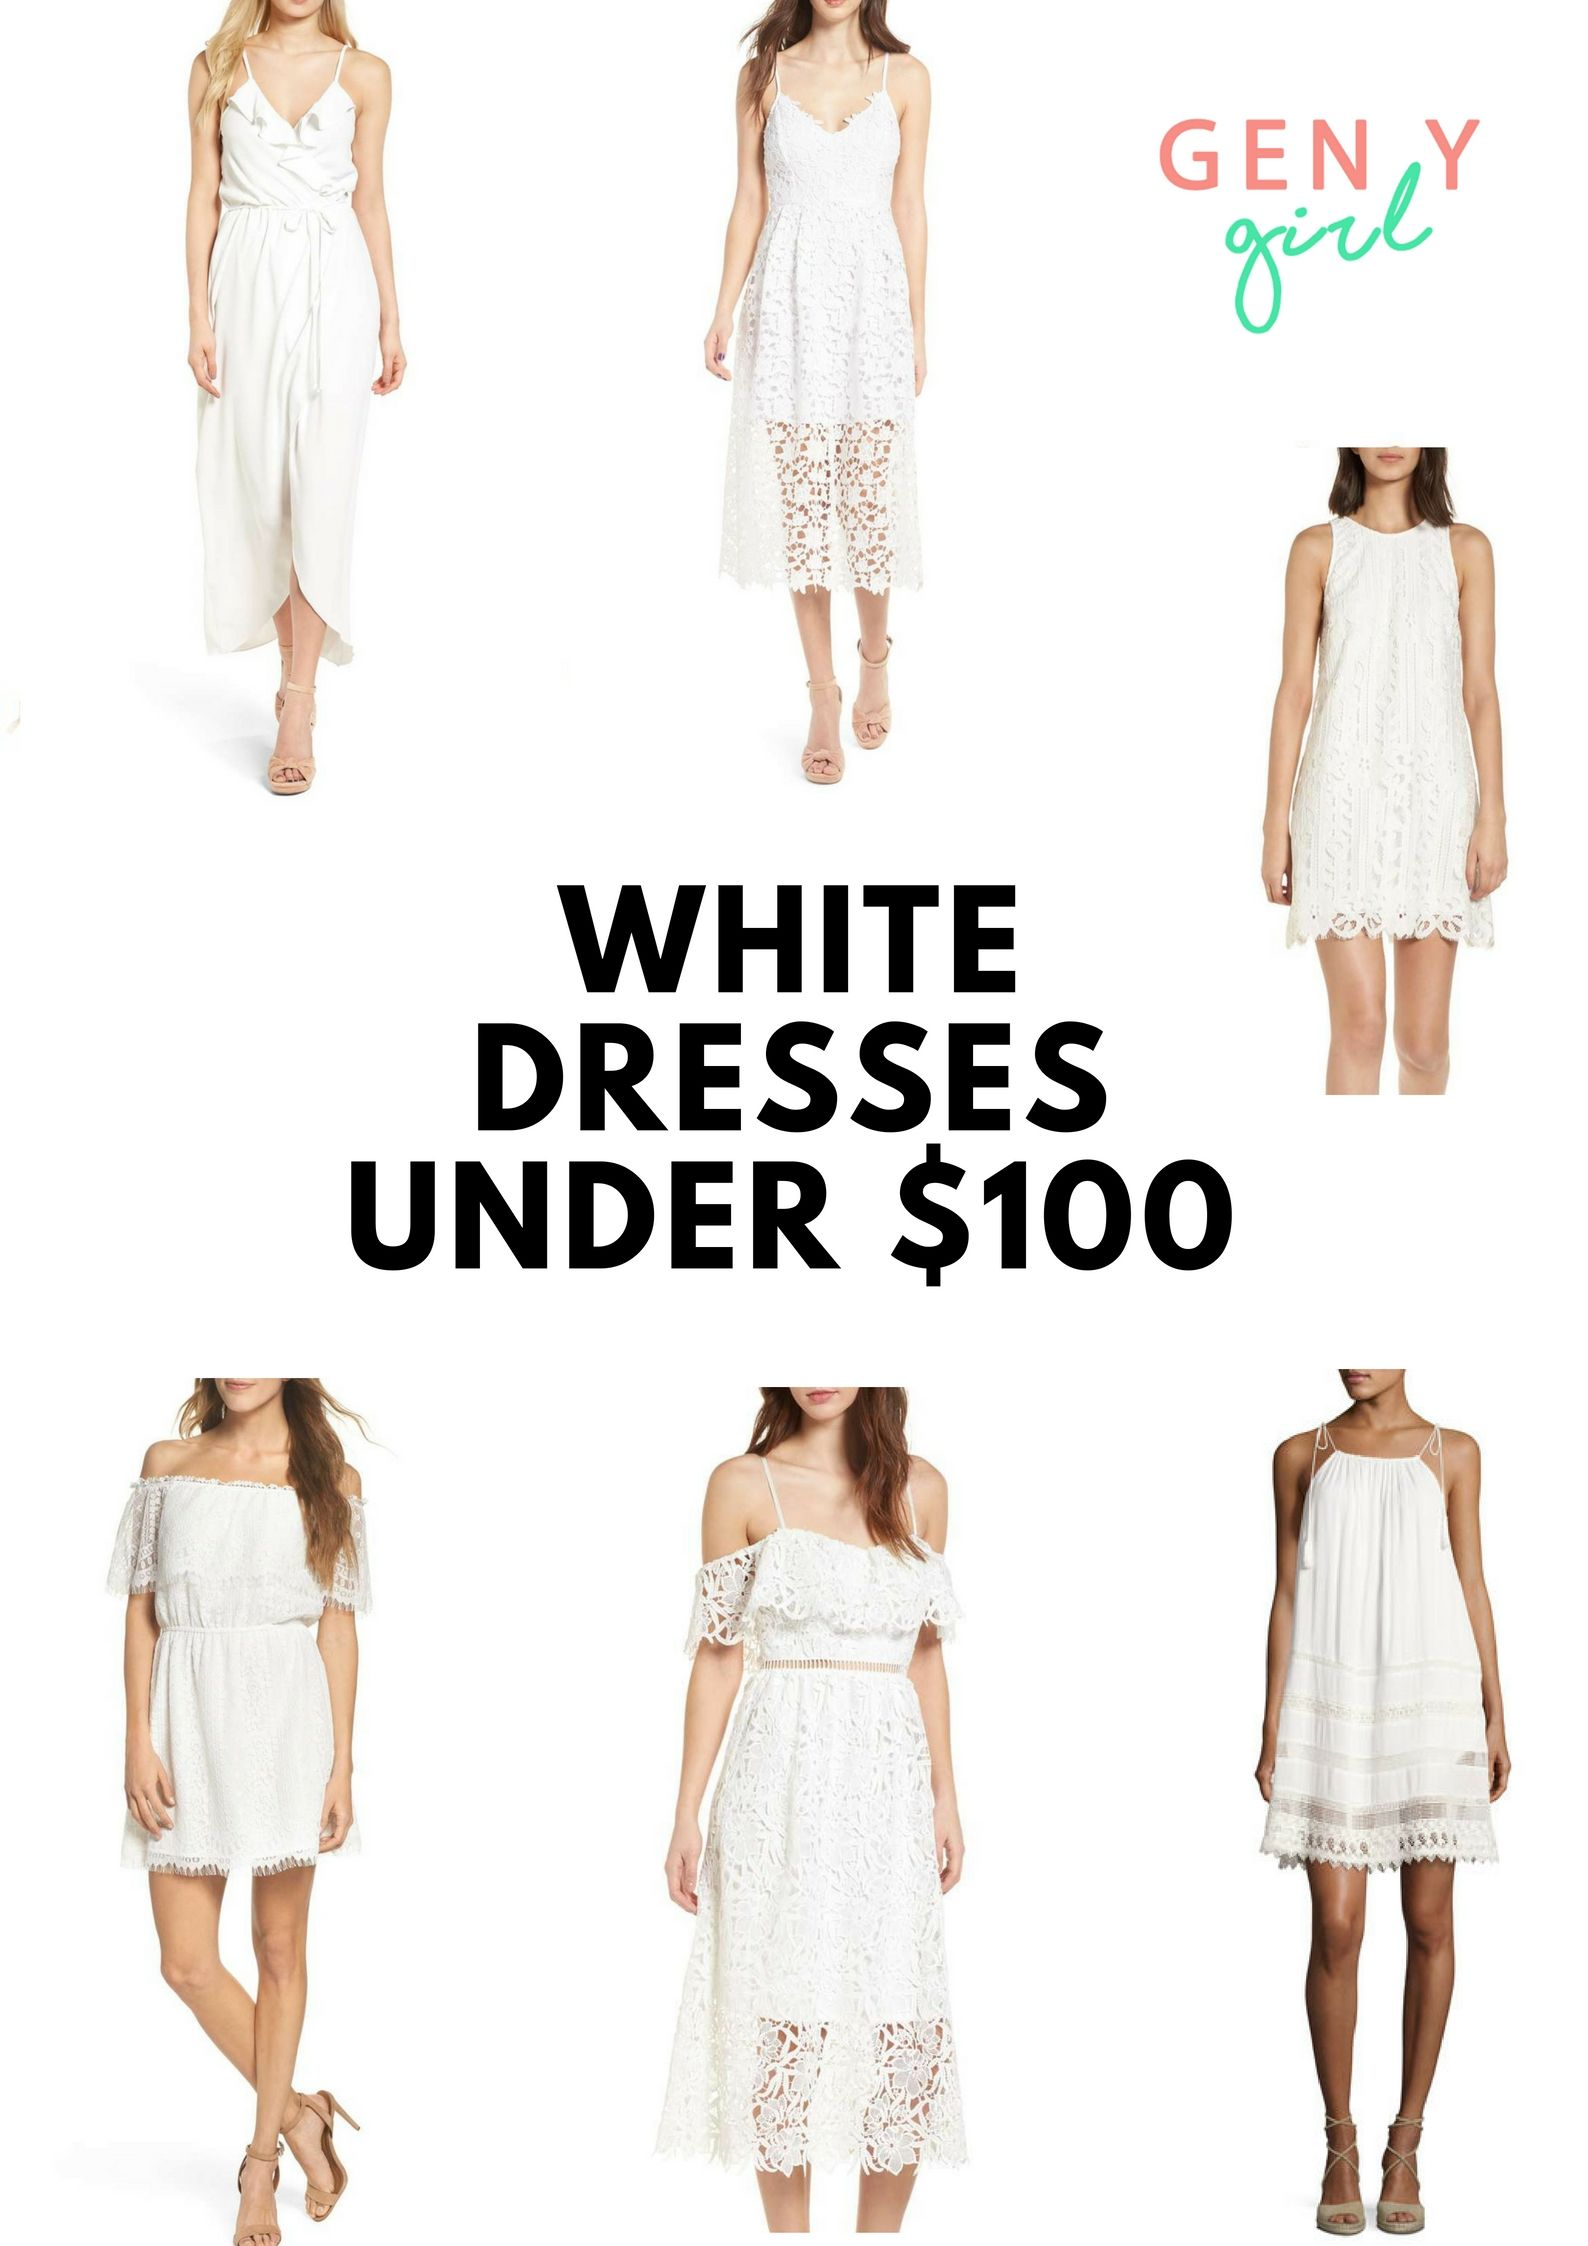 7fc0e9adf6d Sharing my favorite cute white dresses under  100 that are perfect for  spring and summer!